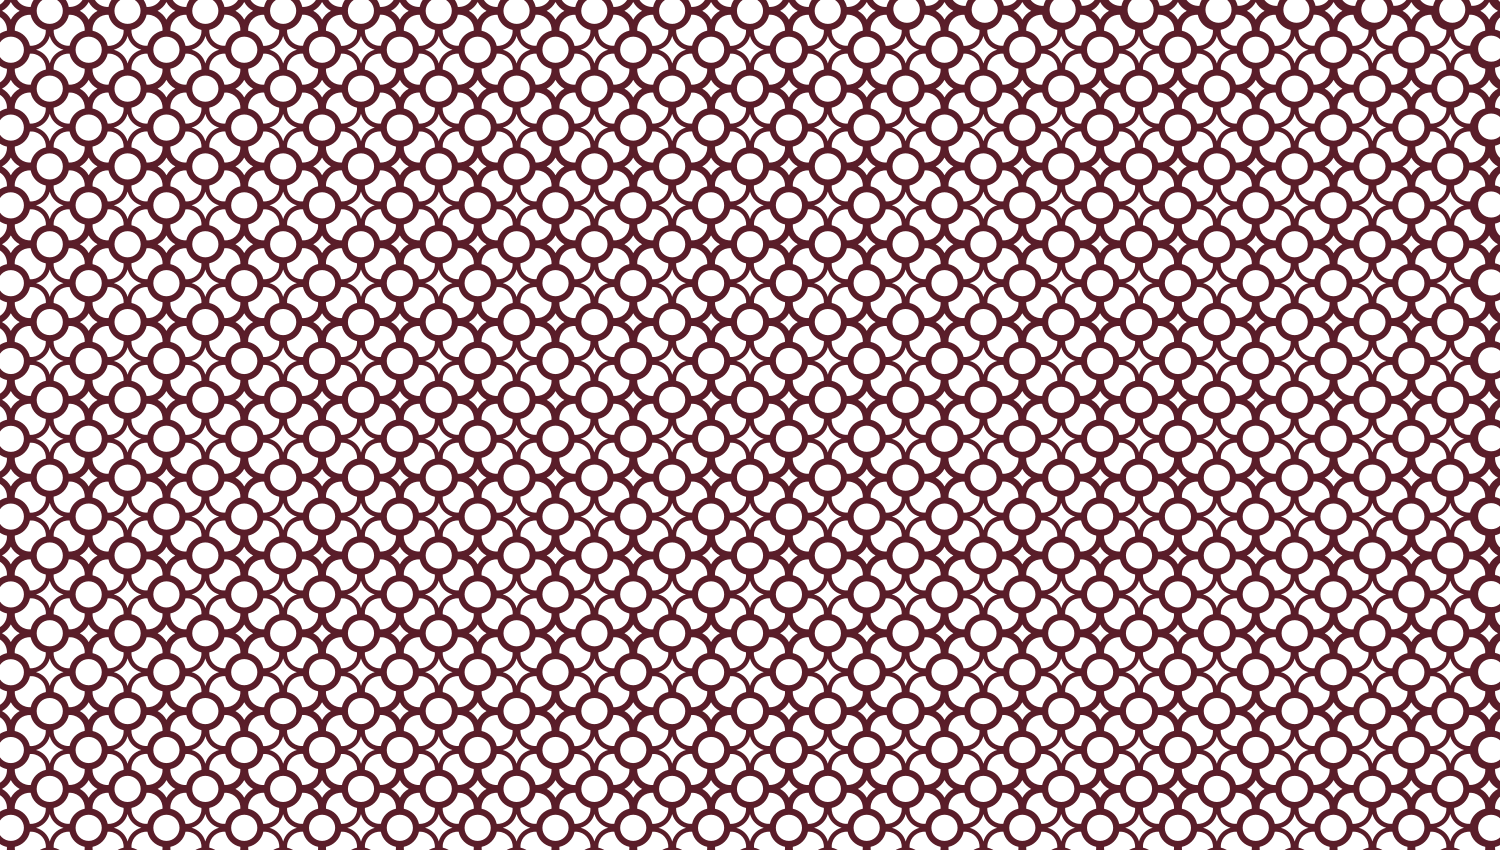 Parasoleil™ Pulsar© pattern displayed with a burgundy color overlay